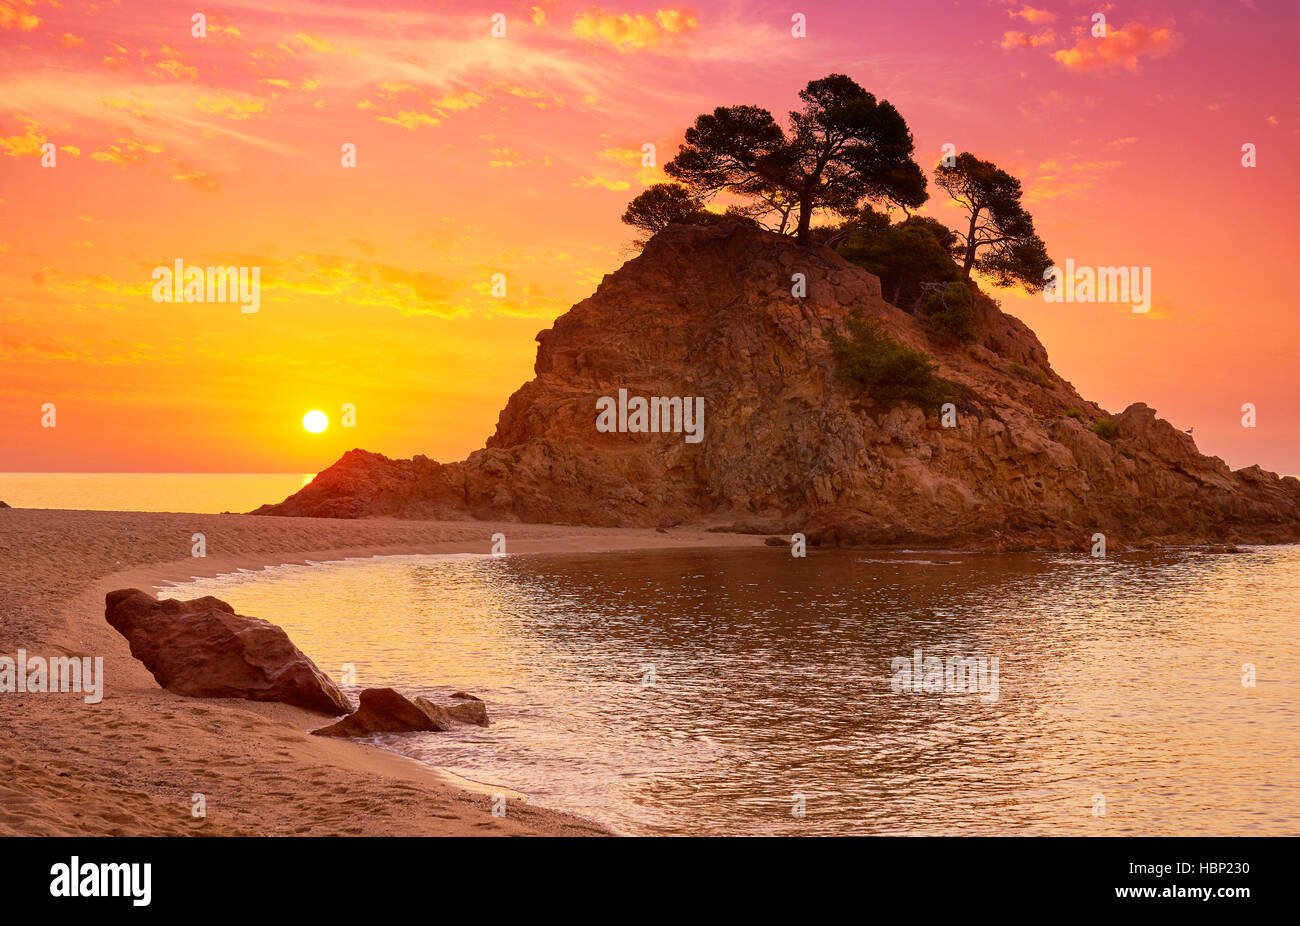 Sunrise at Cap Roig Beach, Costa Brava, Spain - Stock Image